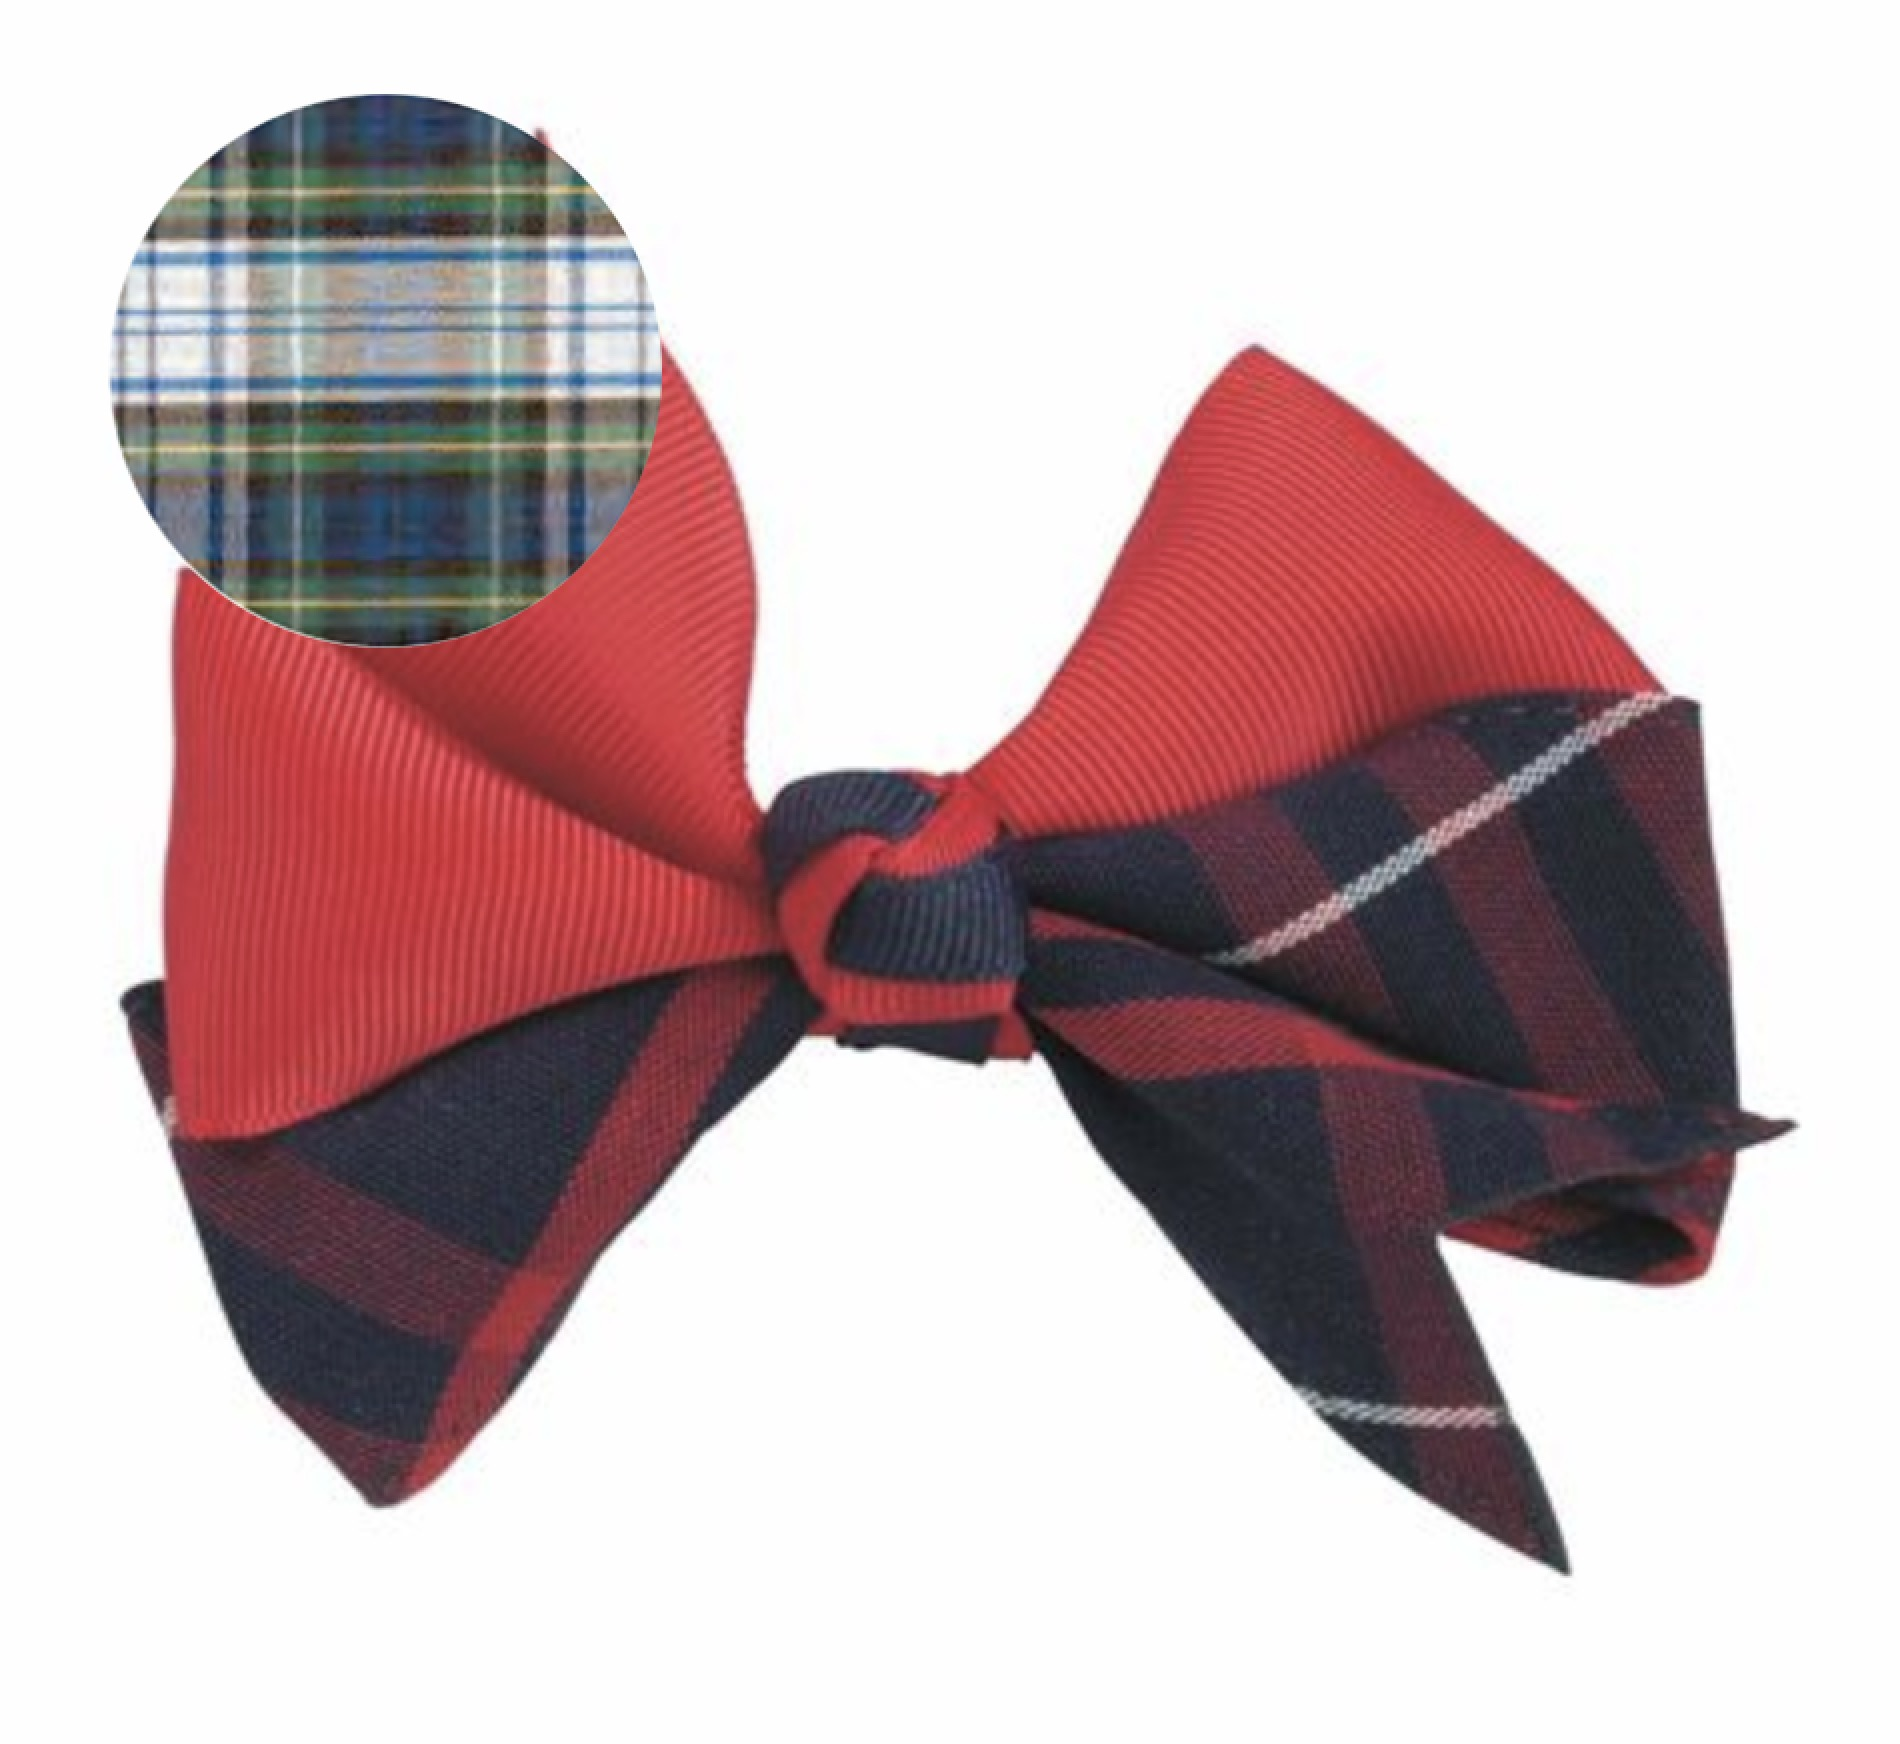 TRINITY EPISCOPAL SCHOOL - Plaid & Ribbon Bow With Two-Toned Ribbon Knot